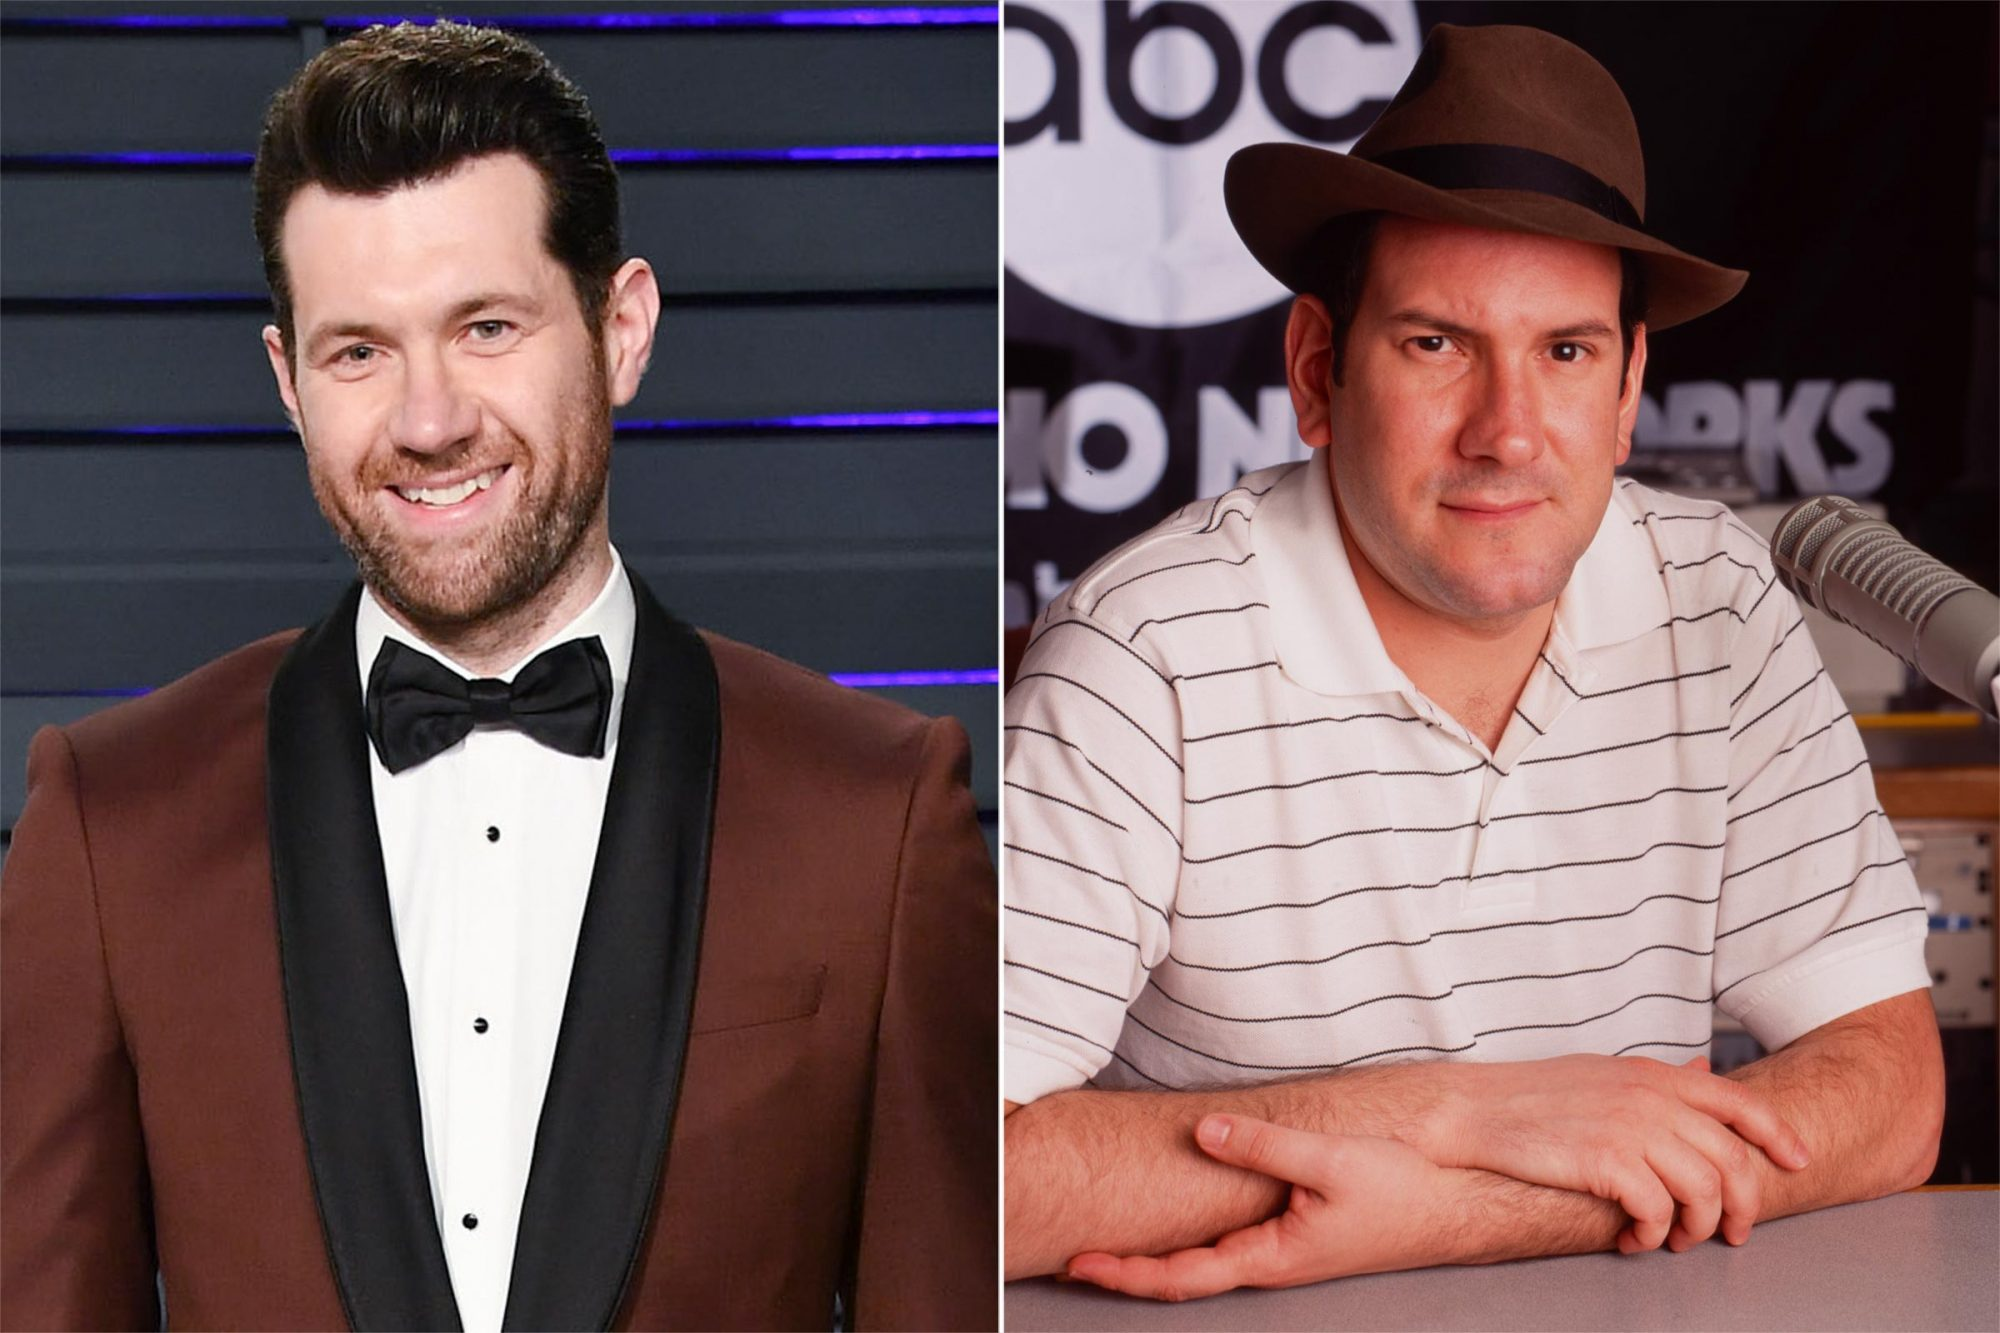 Billy Eichner / Matt Drudge